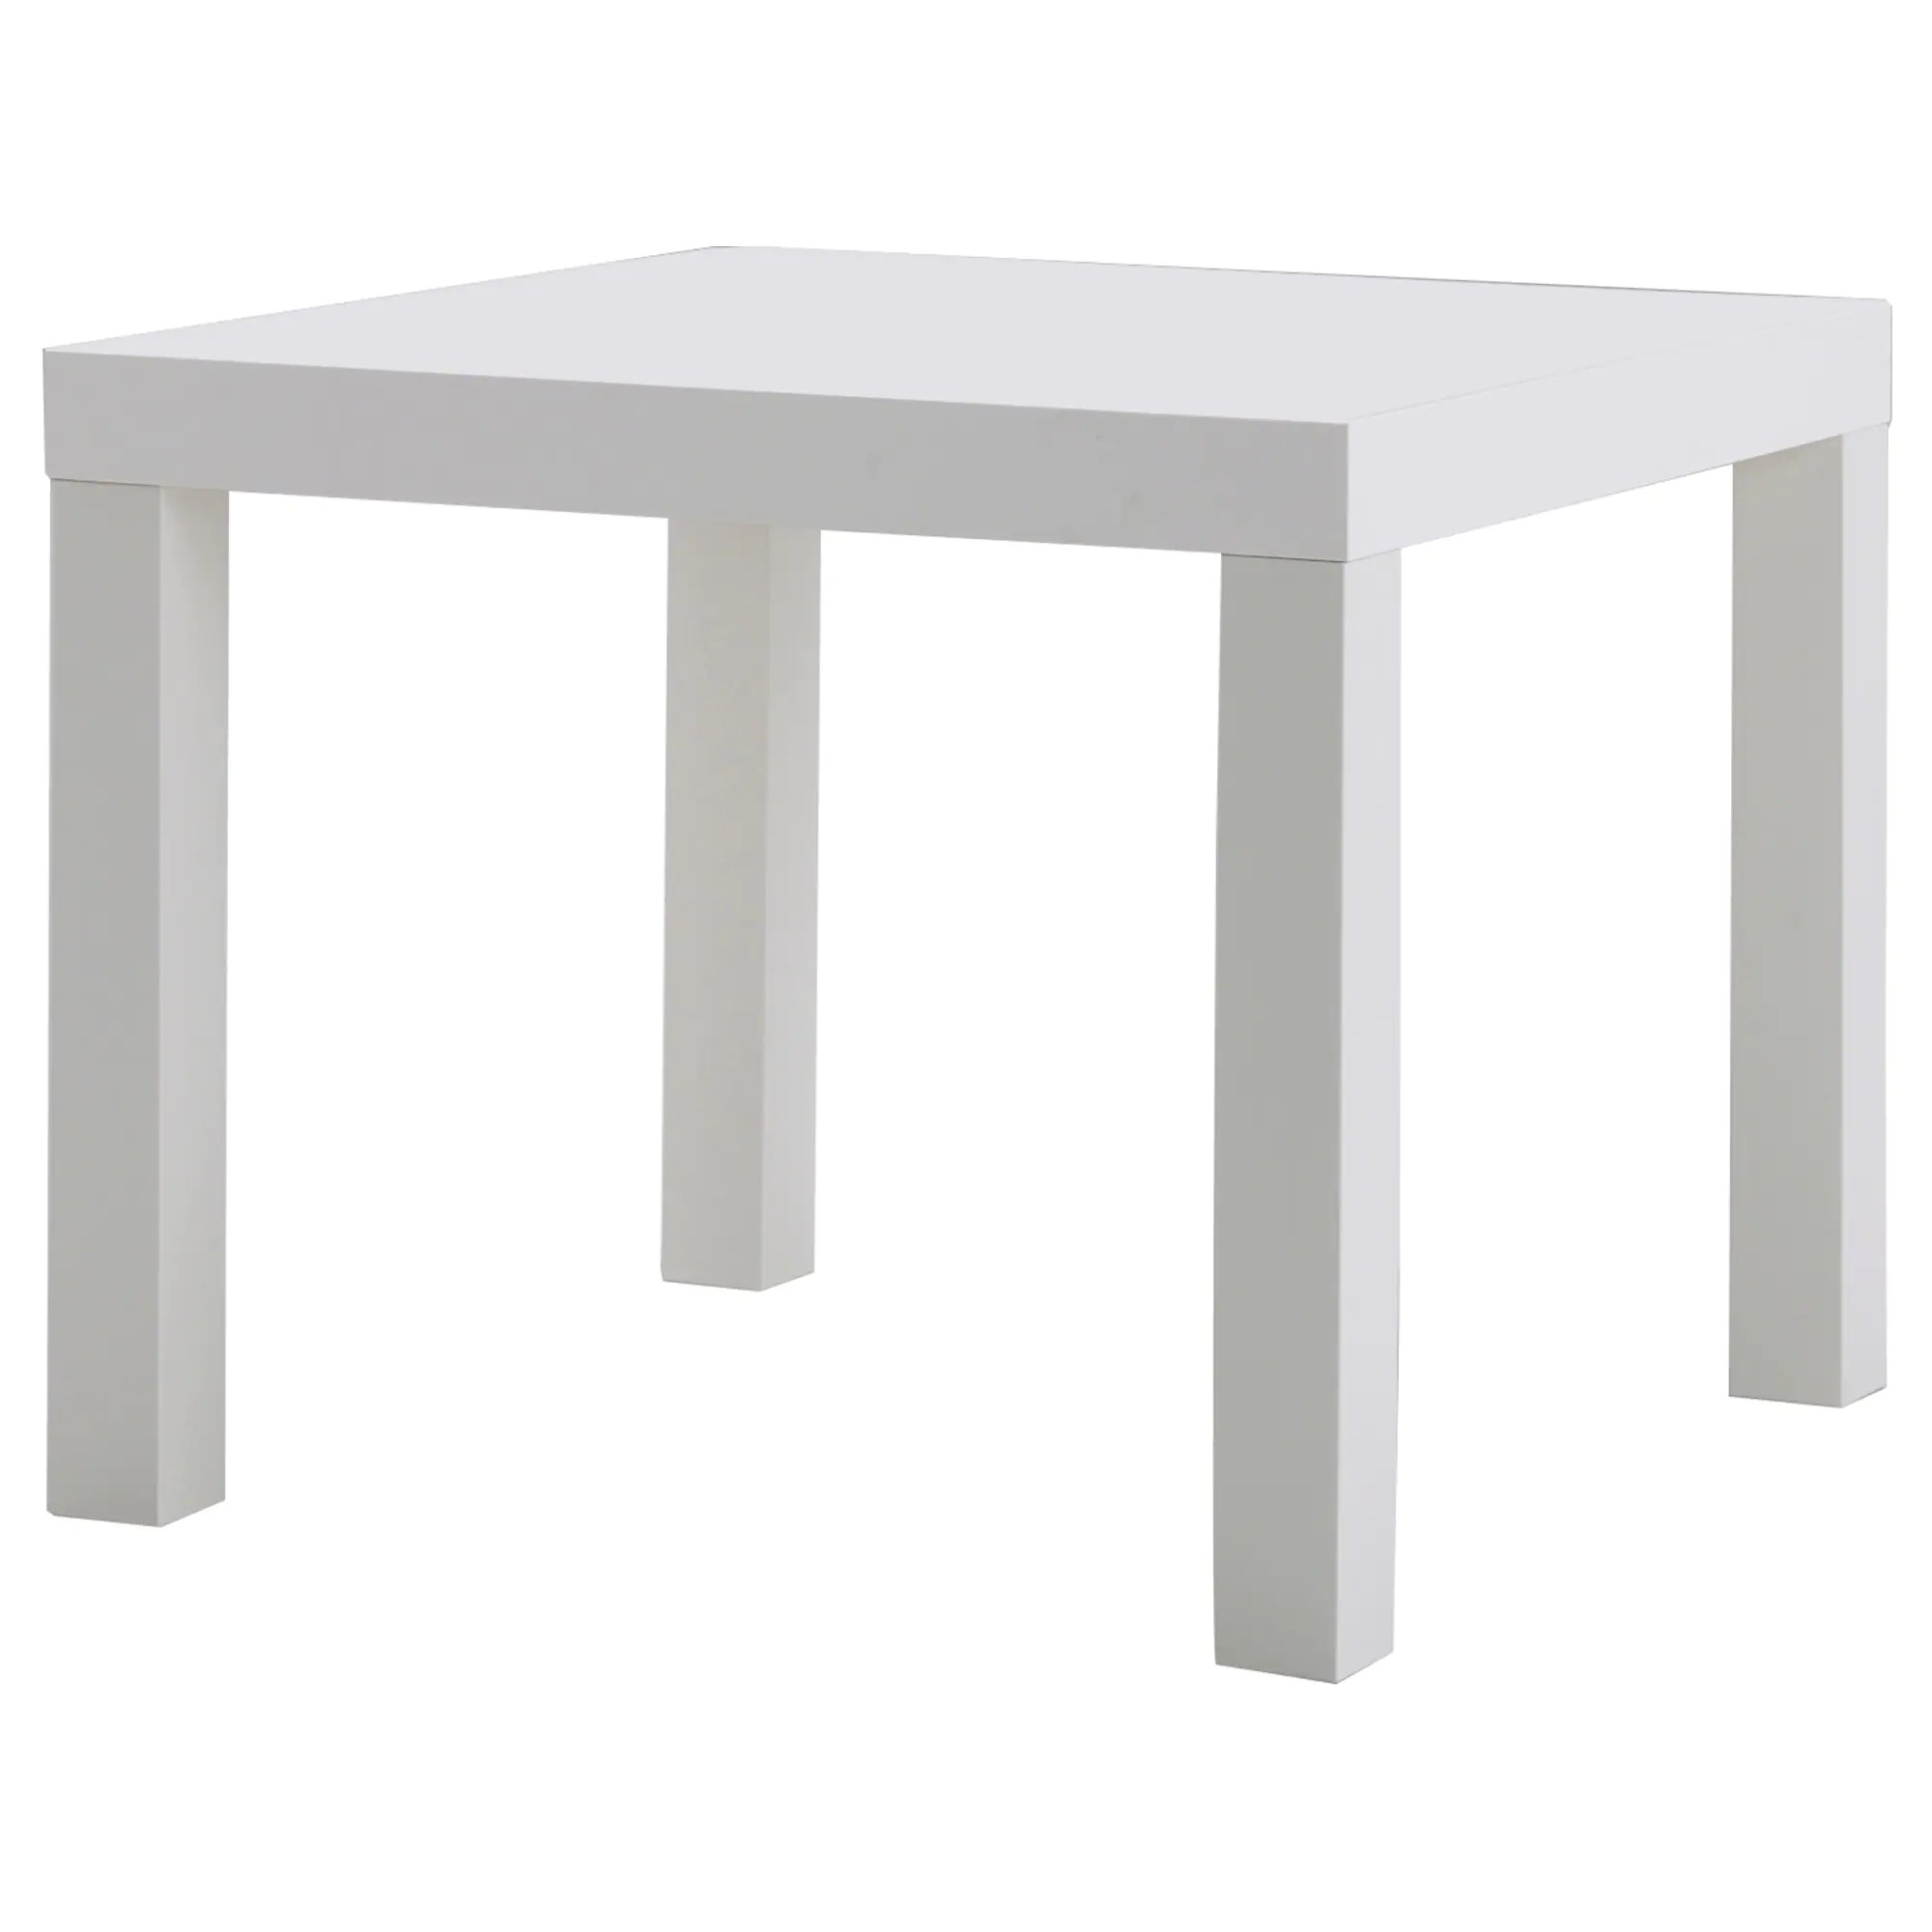 Petite Table Basse Ikea Table D Appoint Lack Blanc